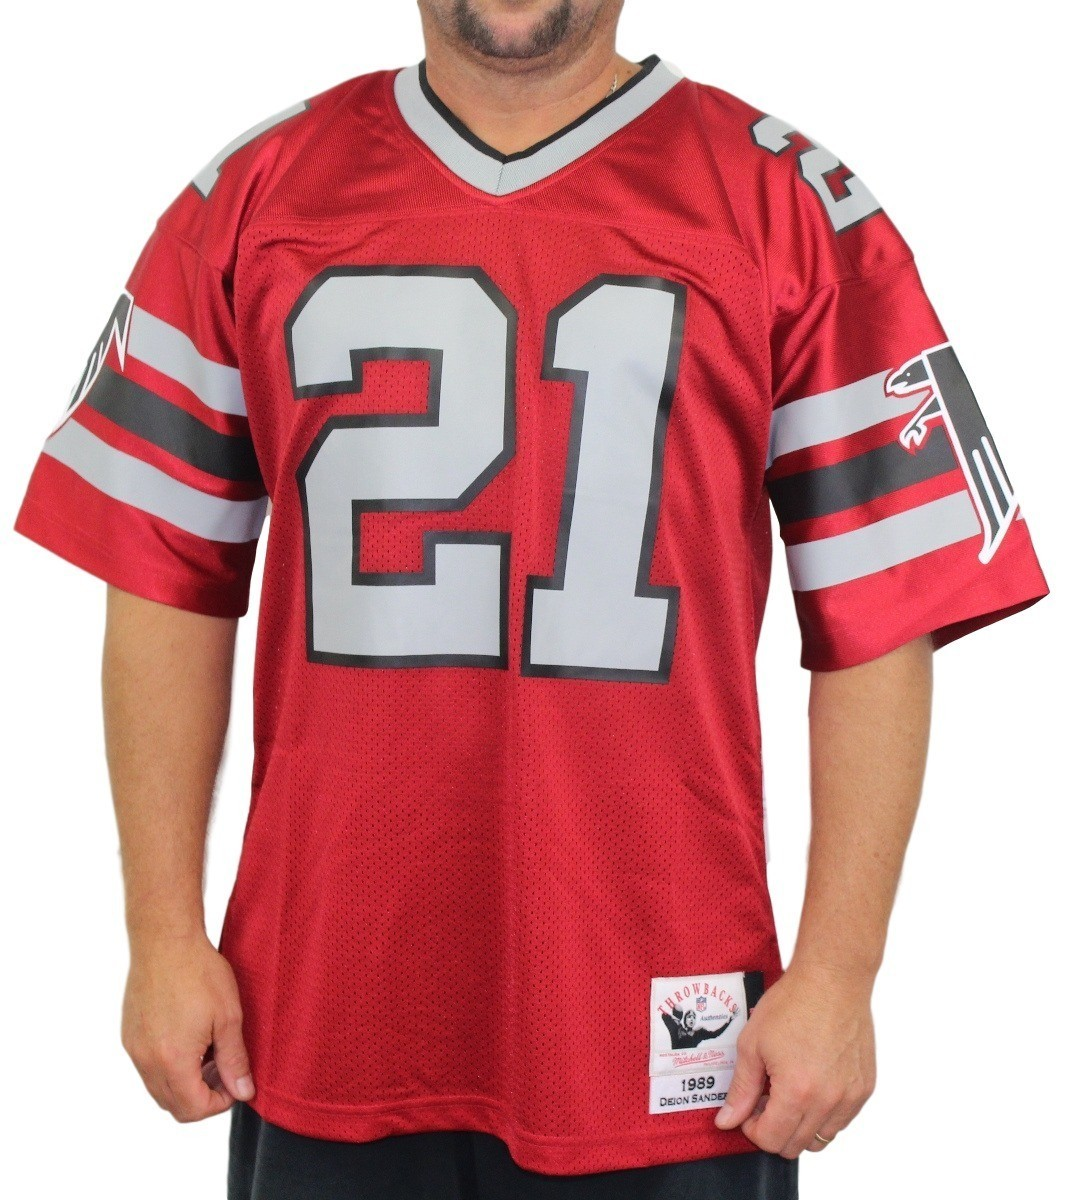 ... sale deion sanders atlanta falcons mitchell ness authentic 1989 red nfl  jersey b6937 3be54 47cdd069c